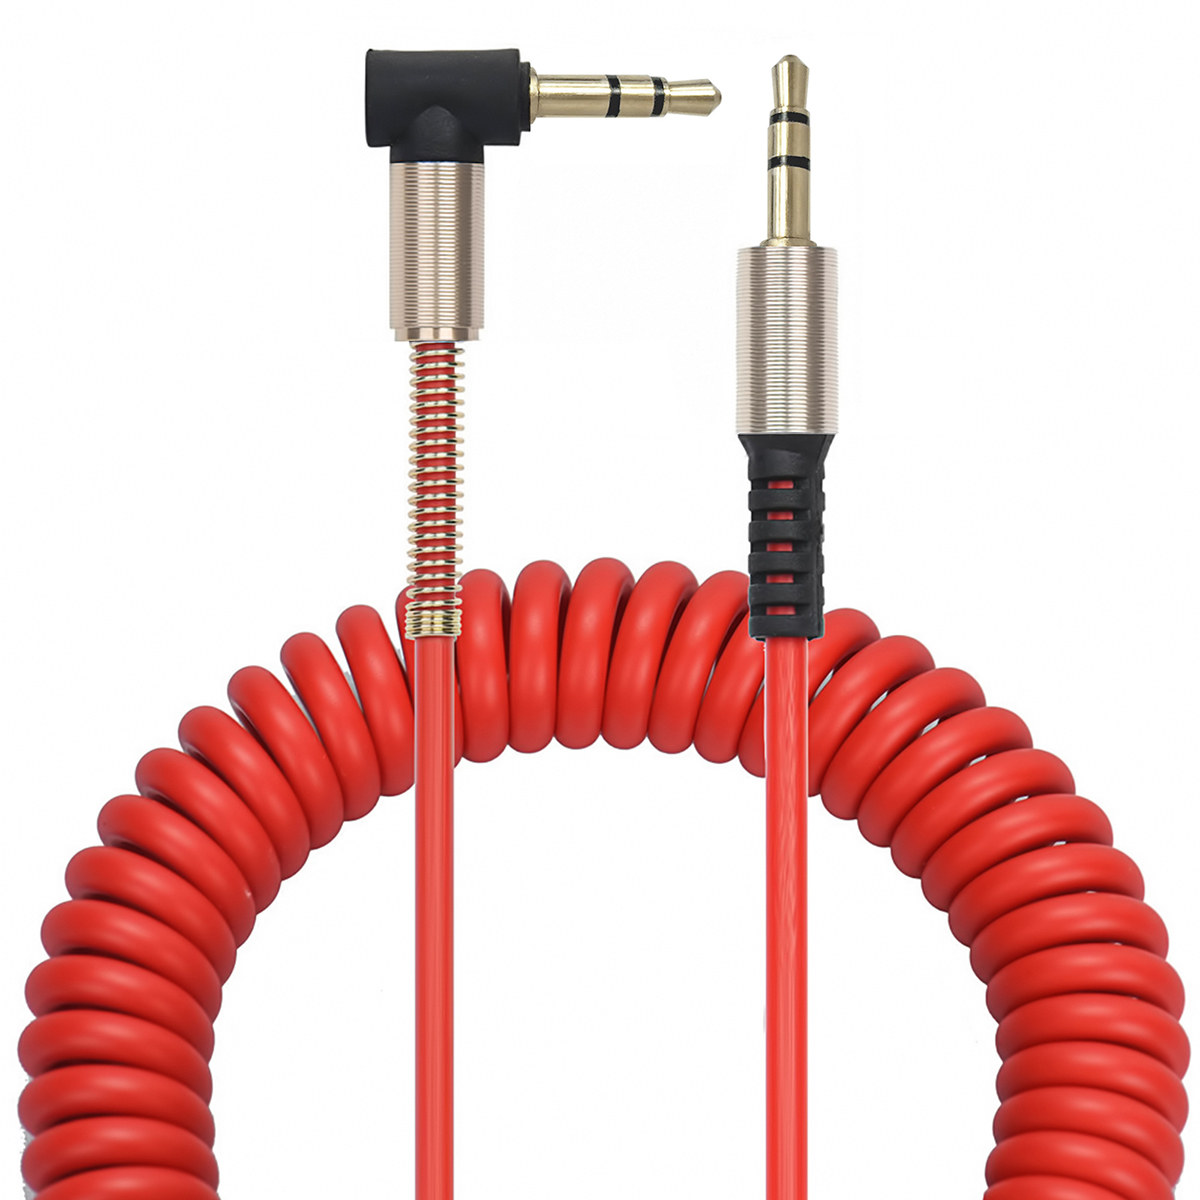 3 5mm Male To Male Audio Cable By Freedomtech 5ft